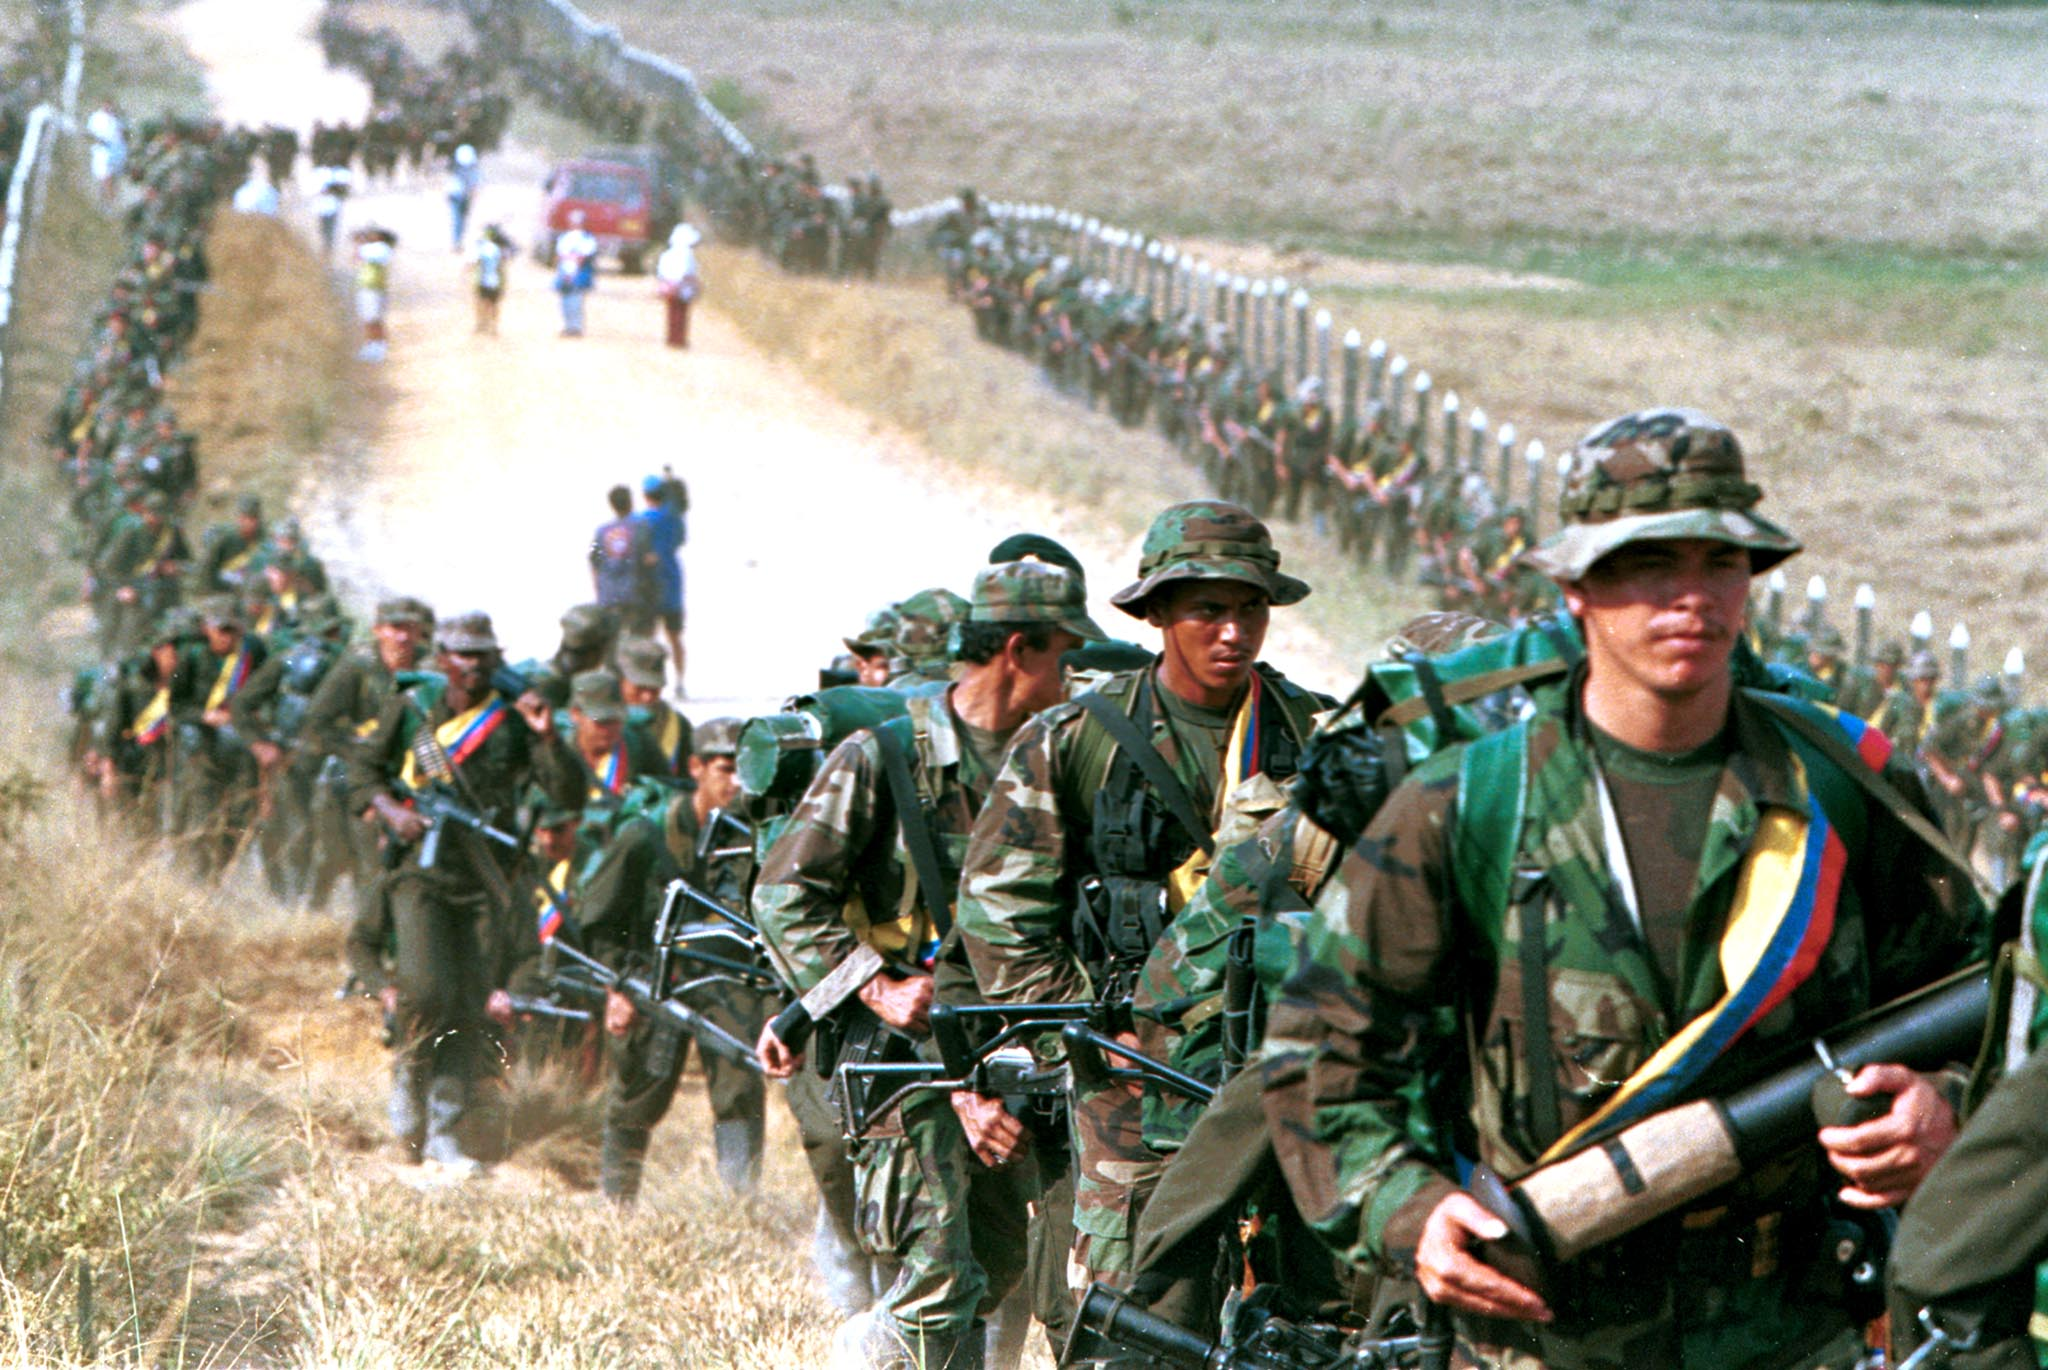 Colombia's Peace Negotiations: Finding Common Ground After 50 Years of Armed Conflict